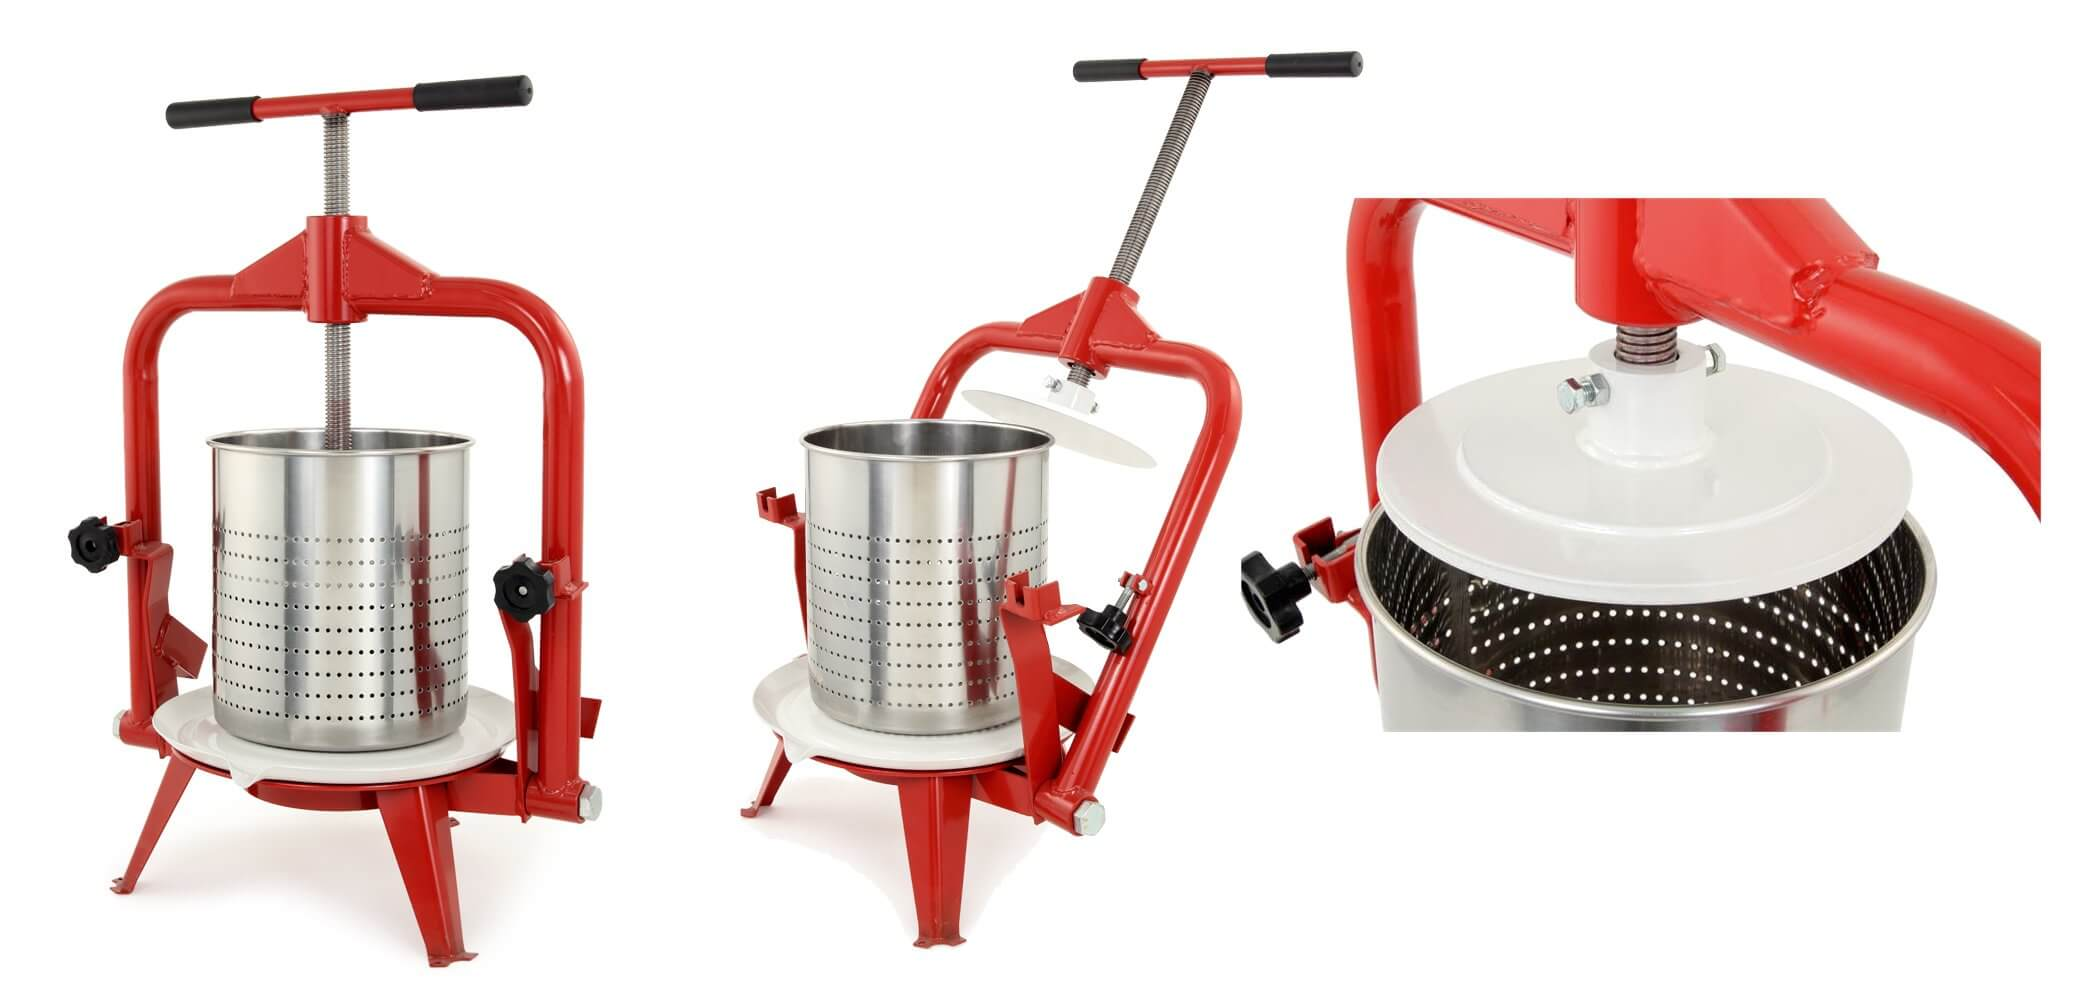 Harvest Deluxe Stainless Steel Fruit Press from TSM 14L